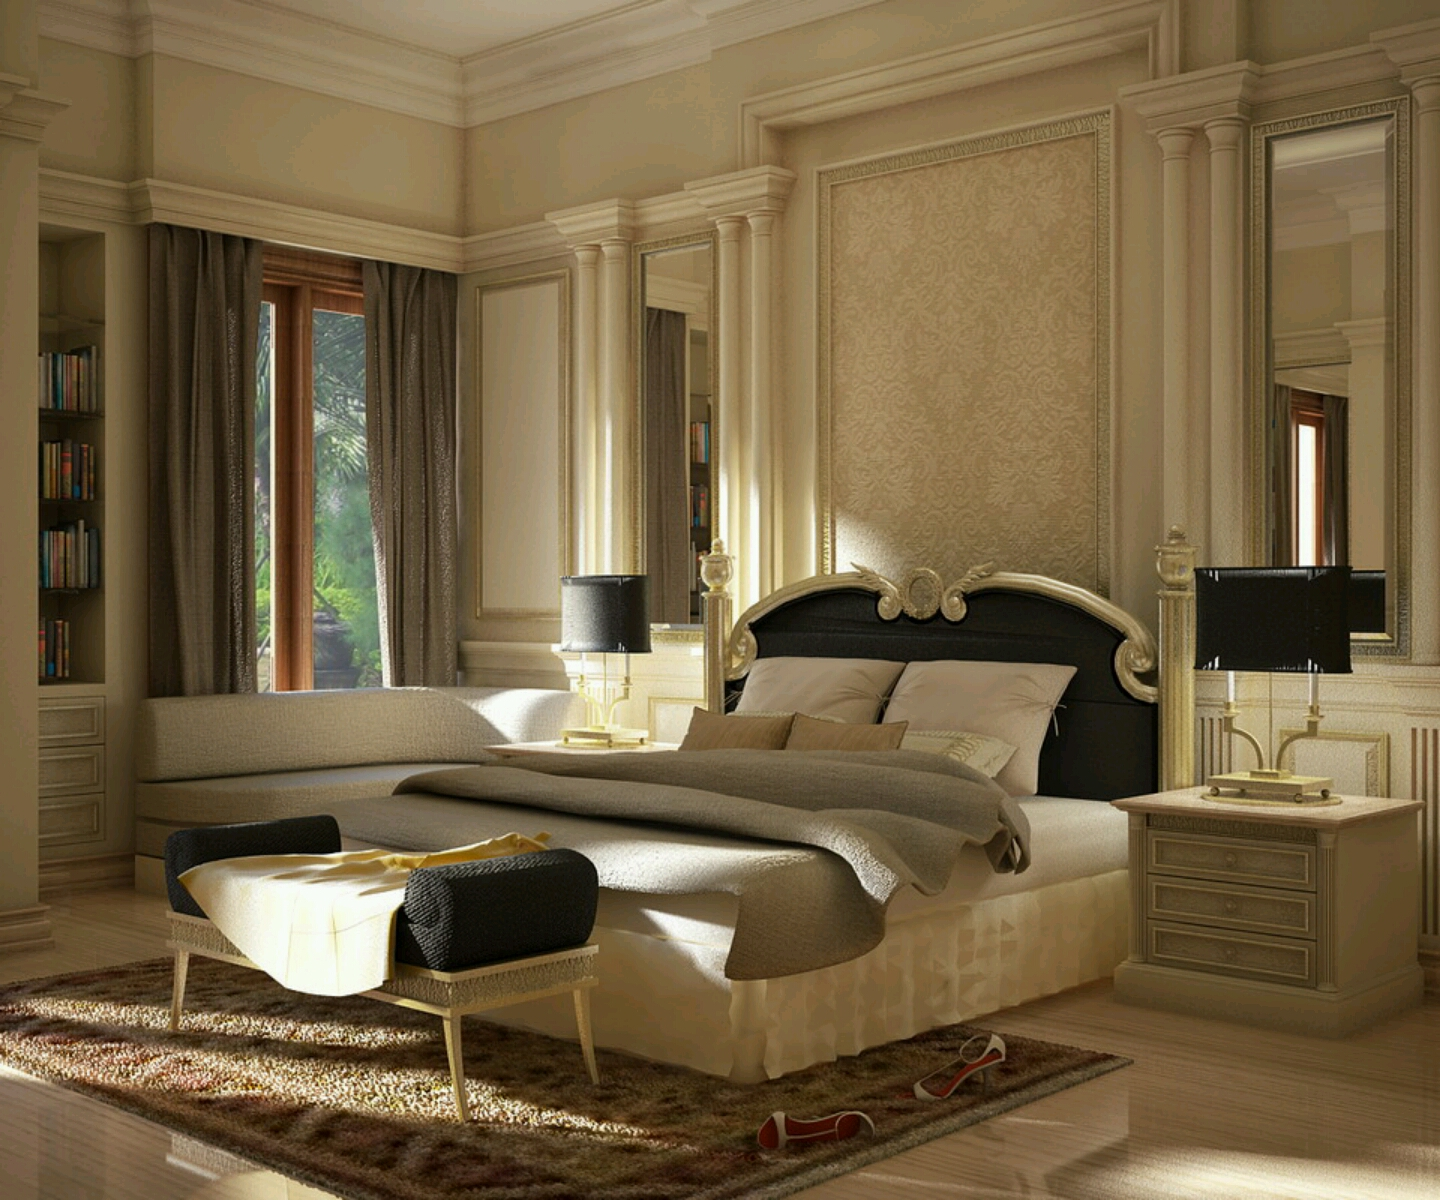 Modern luxury bedroom furniture designs ideas vintage for Luxurious bedroom interior design ideas